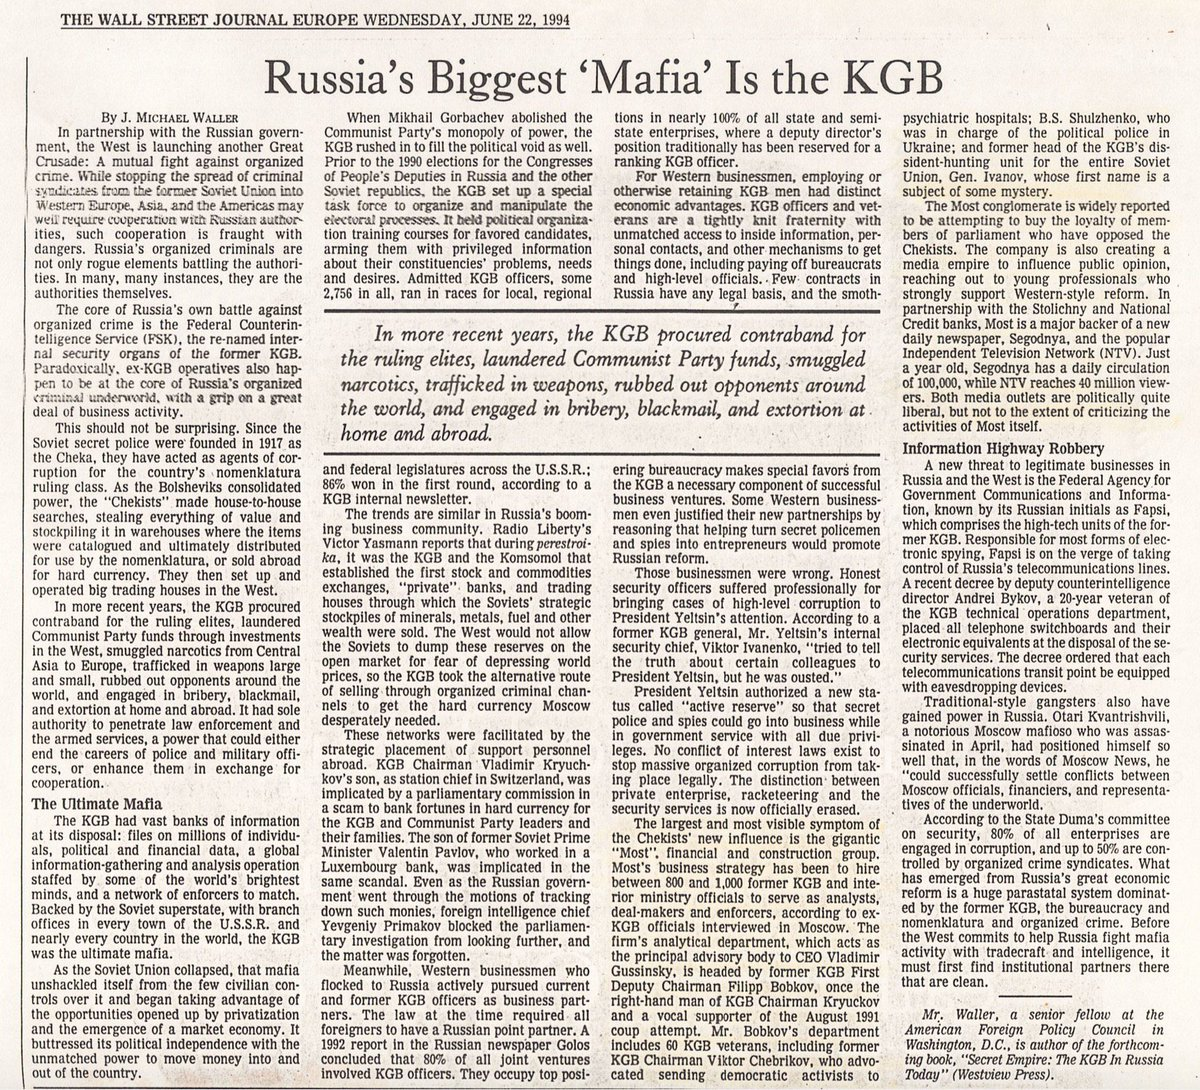 Corrupt dealings with #Russia started 20+ years ago in Clinton Admin. Few wanted to heed warnings. Even Republicans.  http:// jmichaelwaller.com/wp-content/upl oads/2002/08/WSJ-Russia-Mafia-KGB-1994.06.22.pdf &nbsp; … <br>http://pic.twitter.com/XTVpU6pwUJ